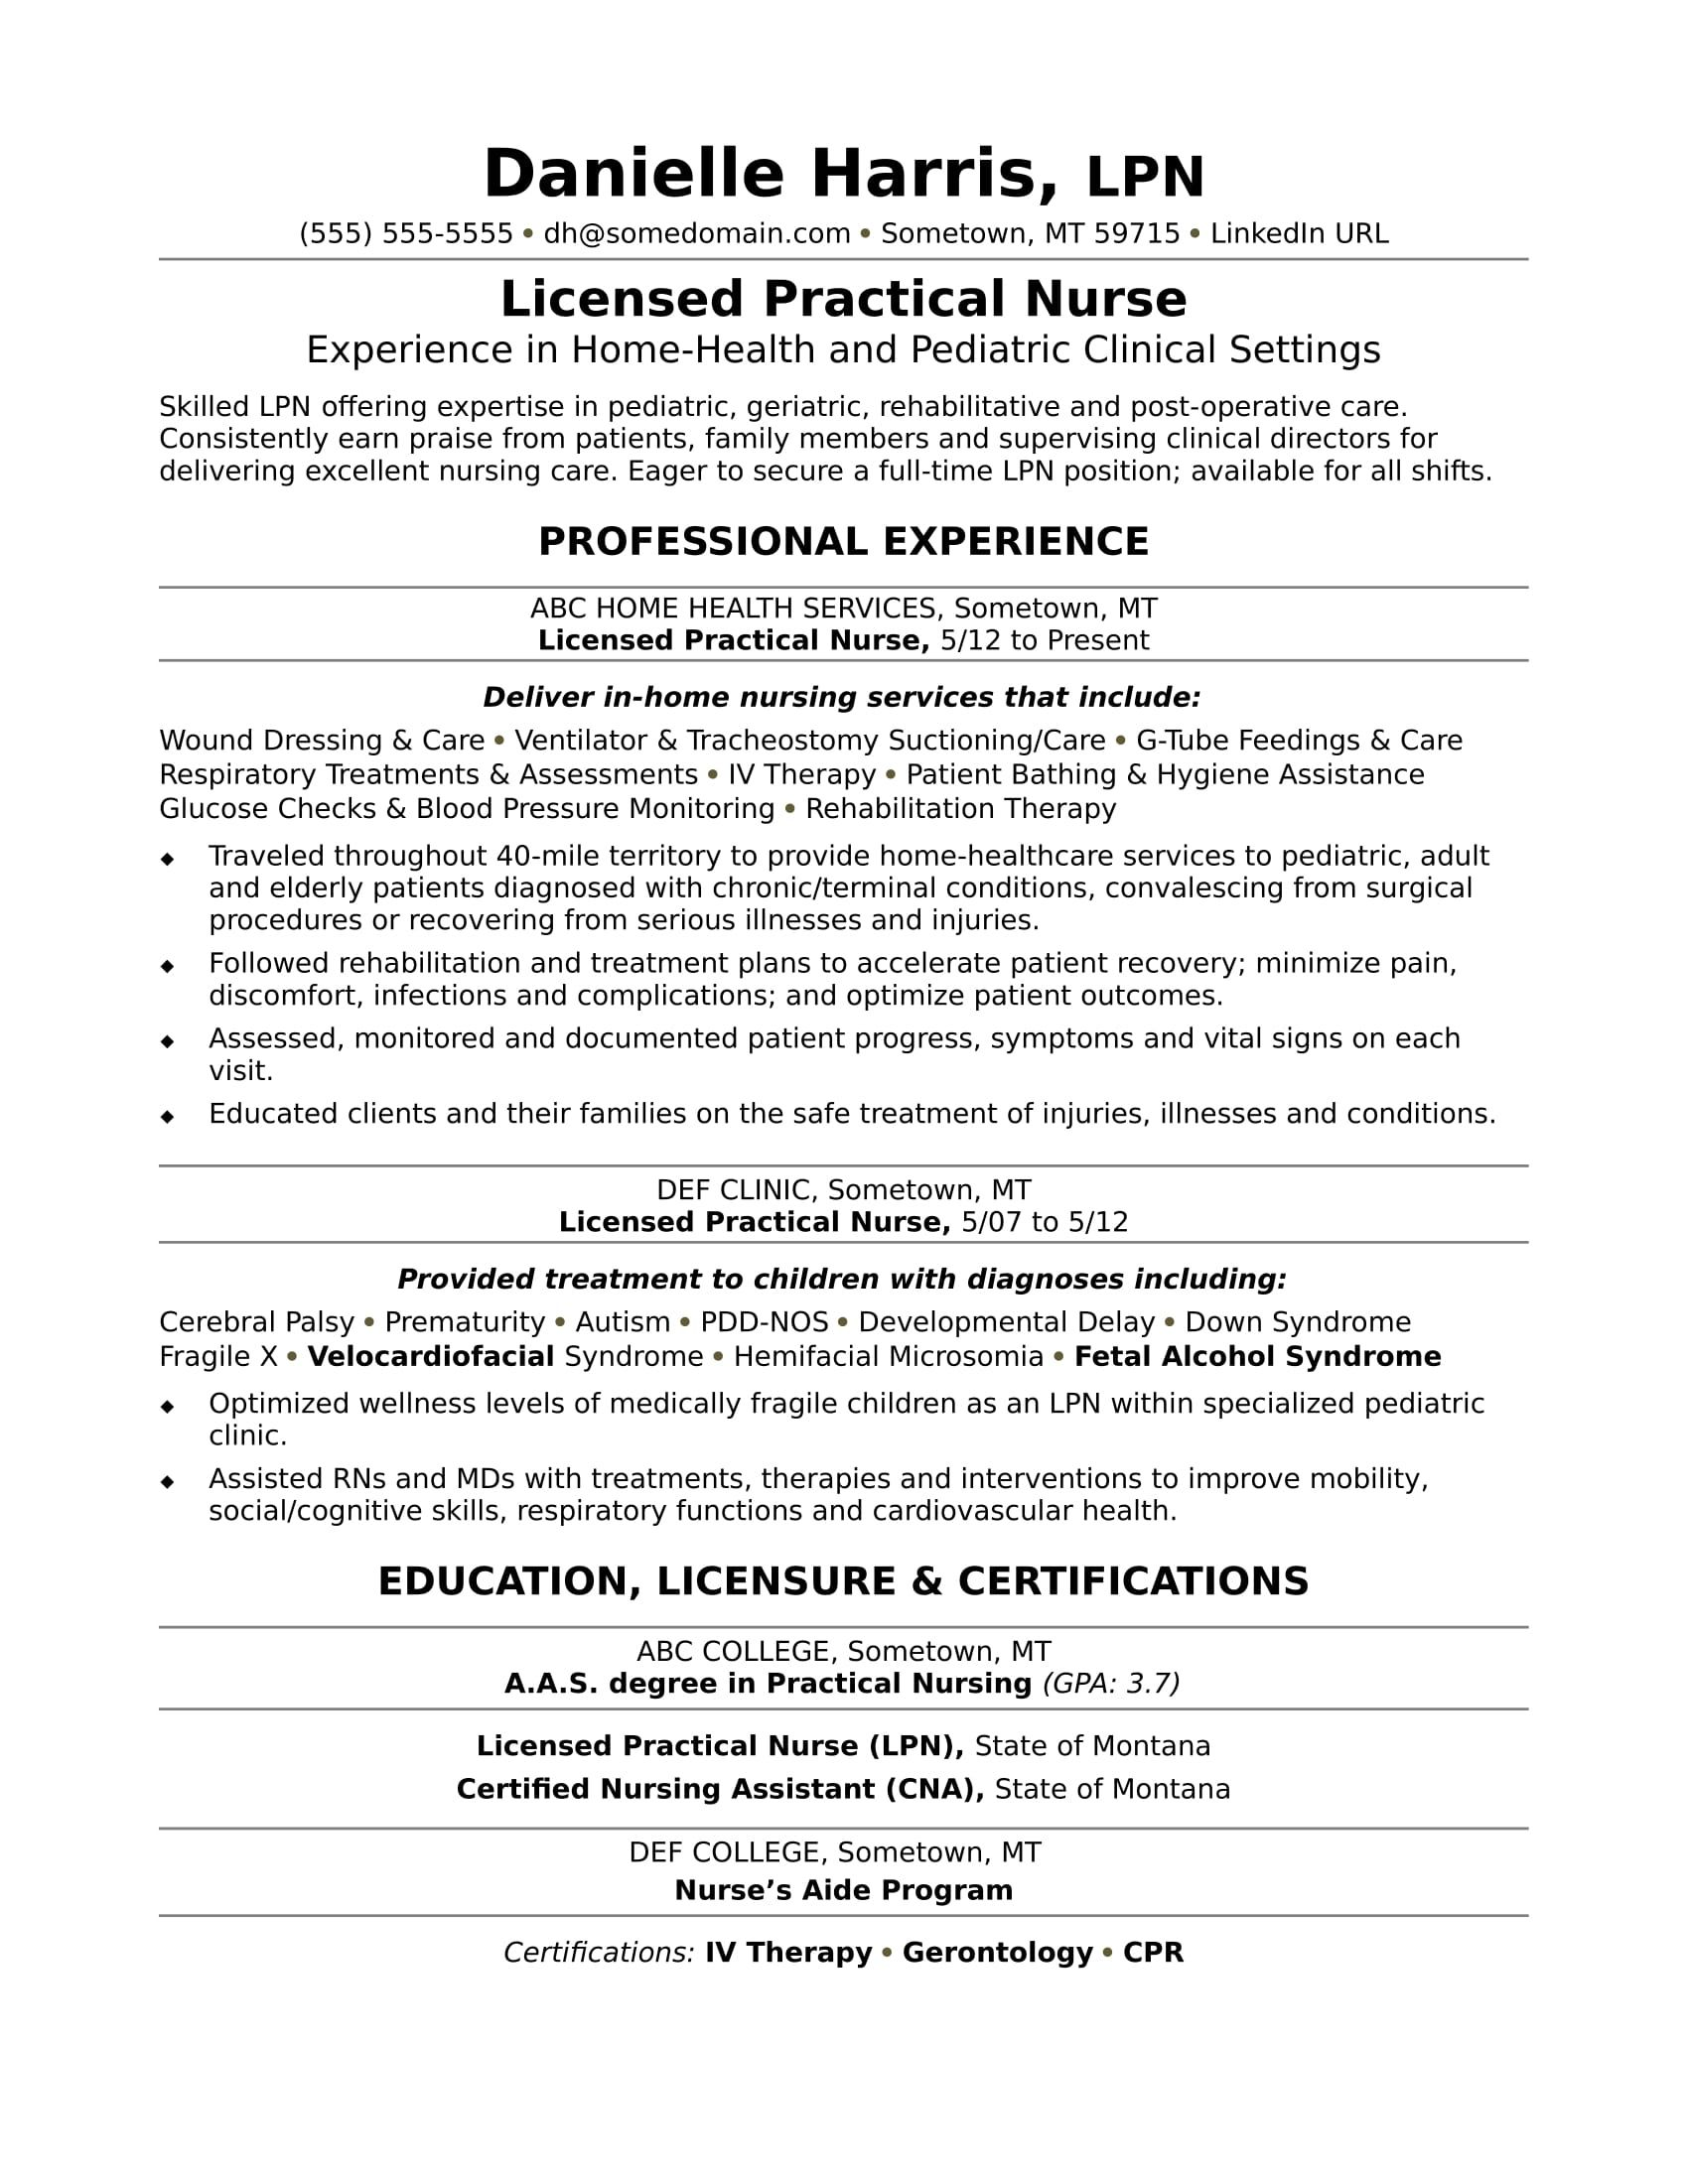 Need To Revive Your Licensed Practical Nurse Resume Check Out